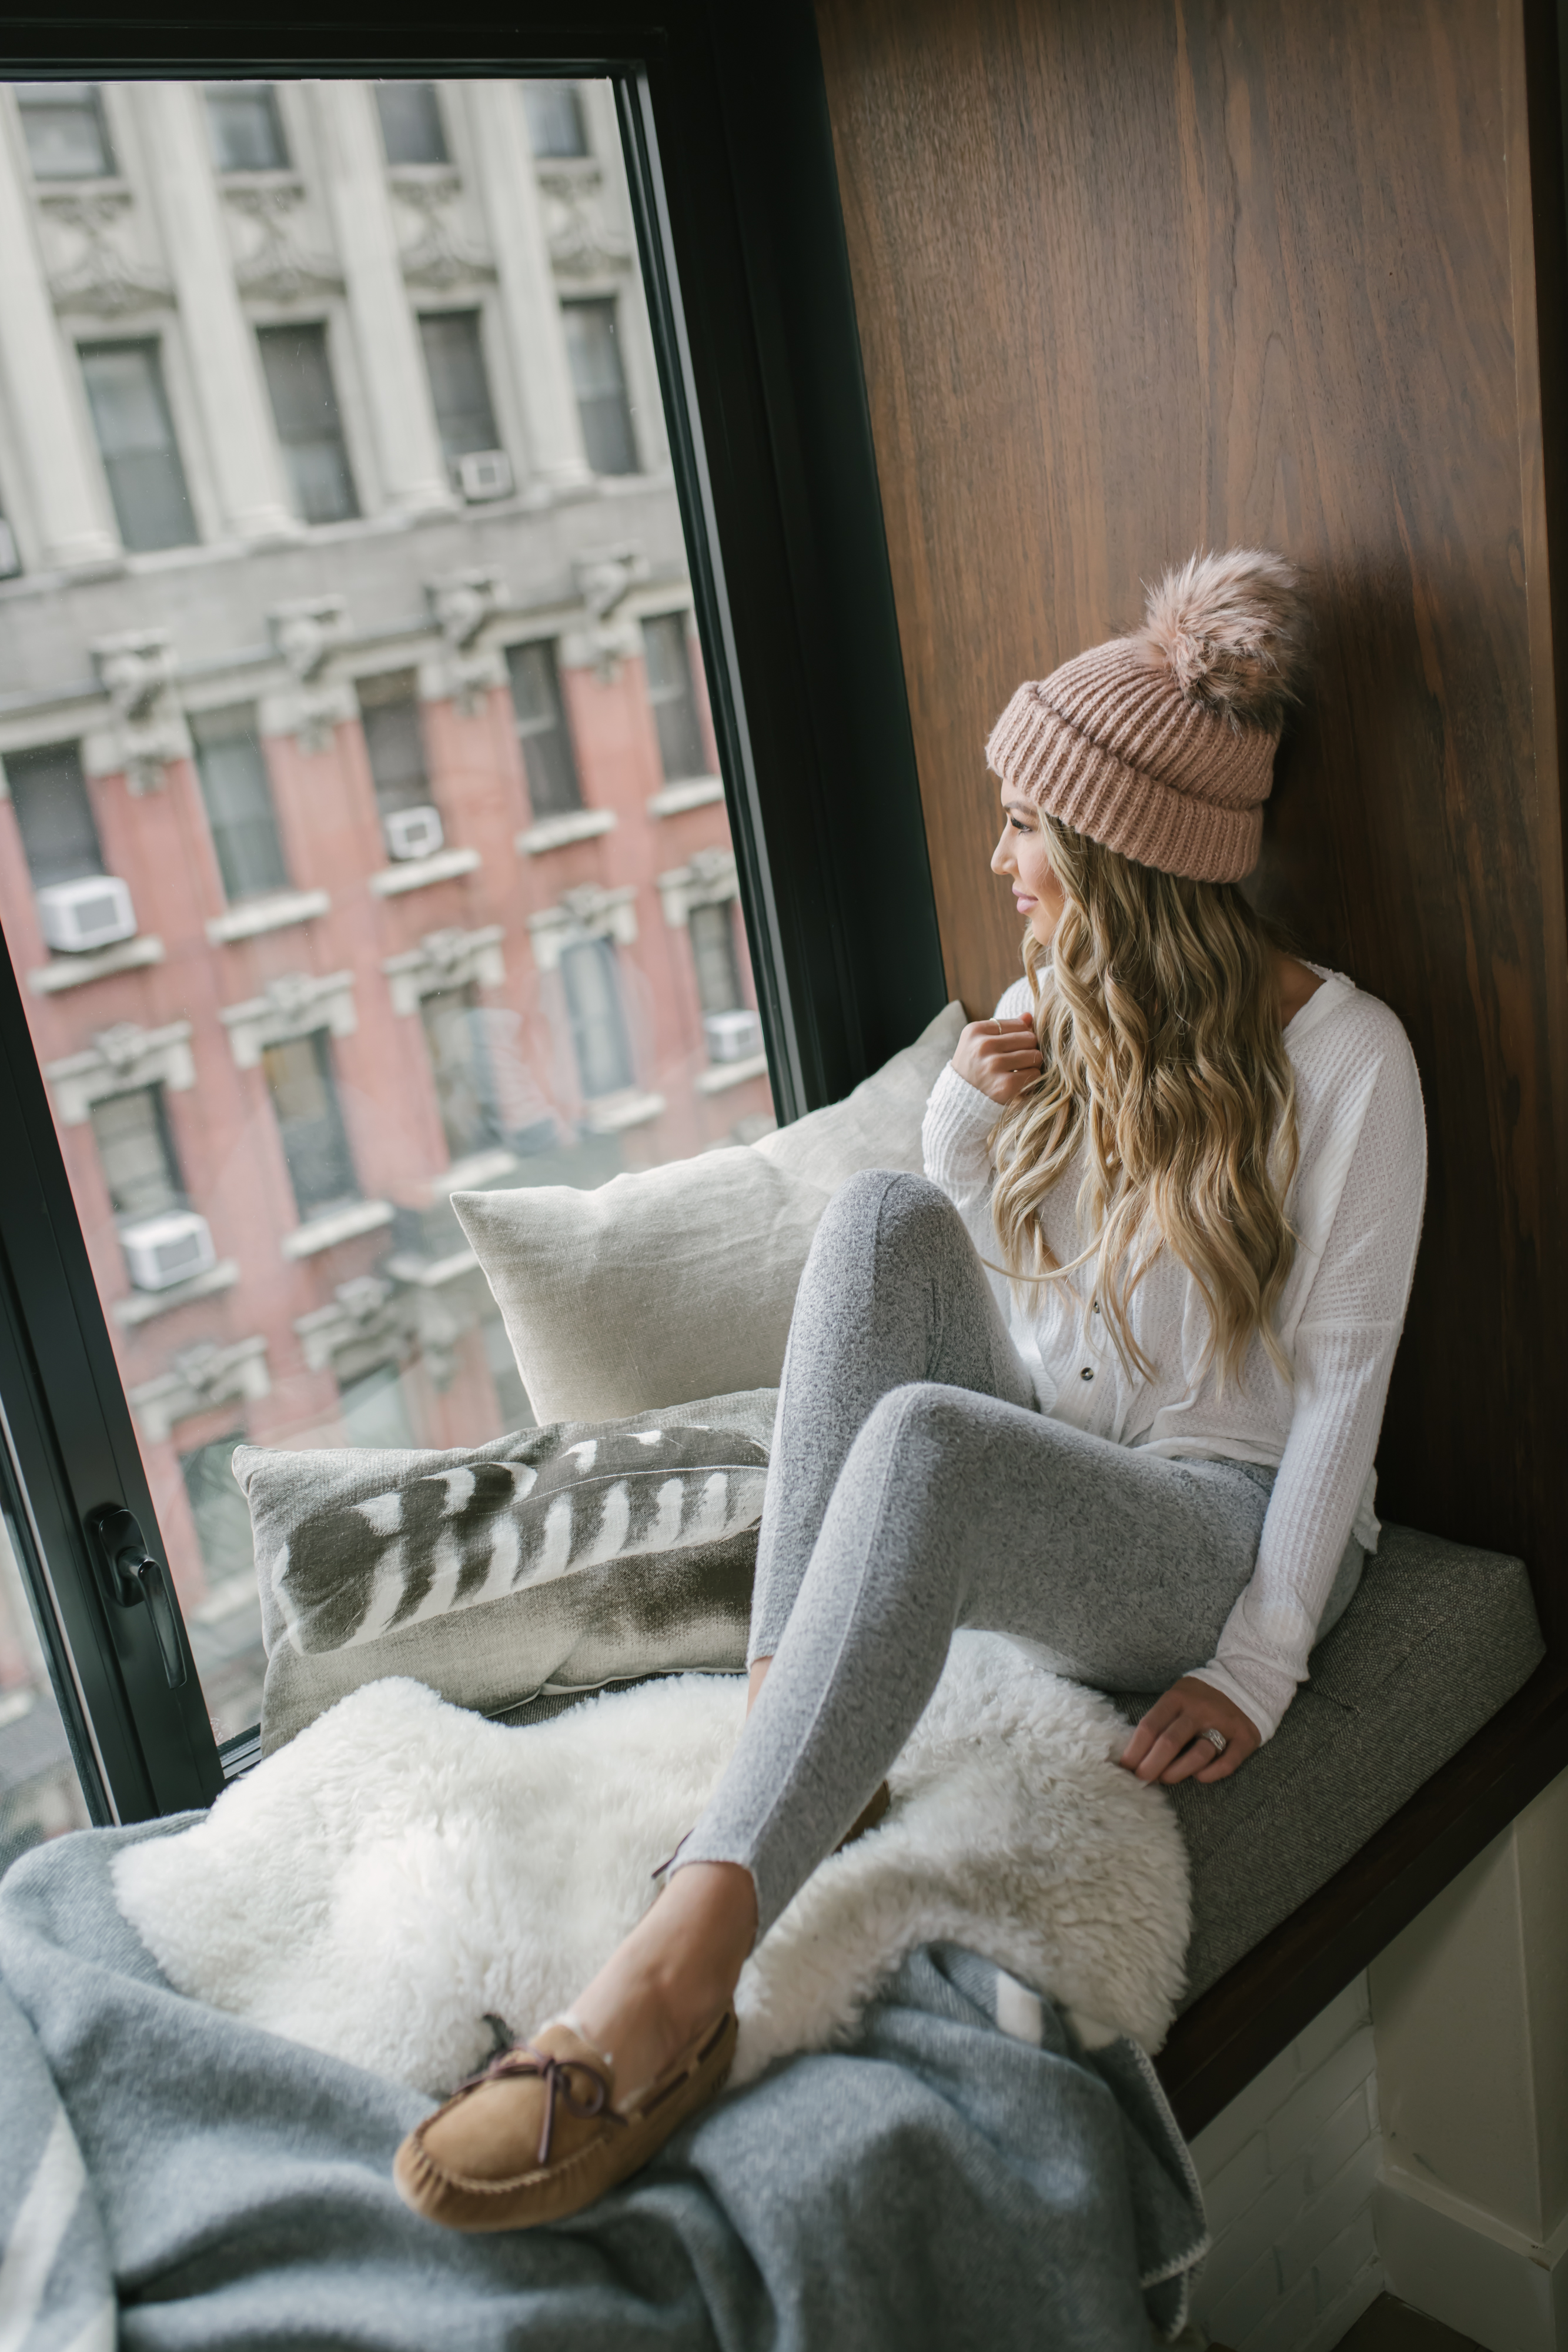 Cozy Ugg Slippers In Nyc Hollie Elizabeth A Lifestyle